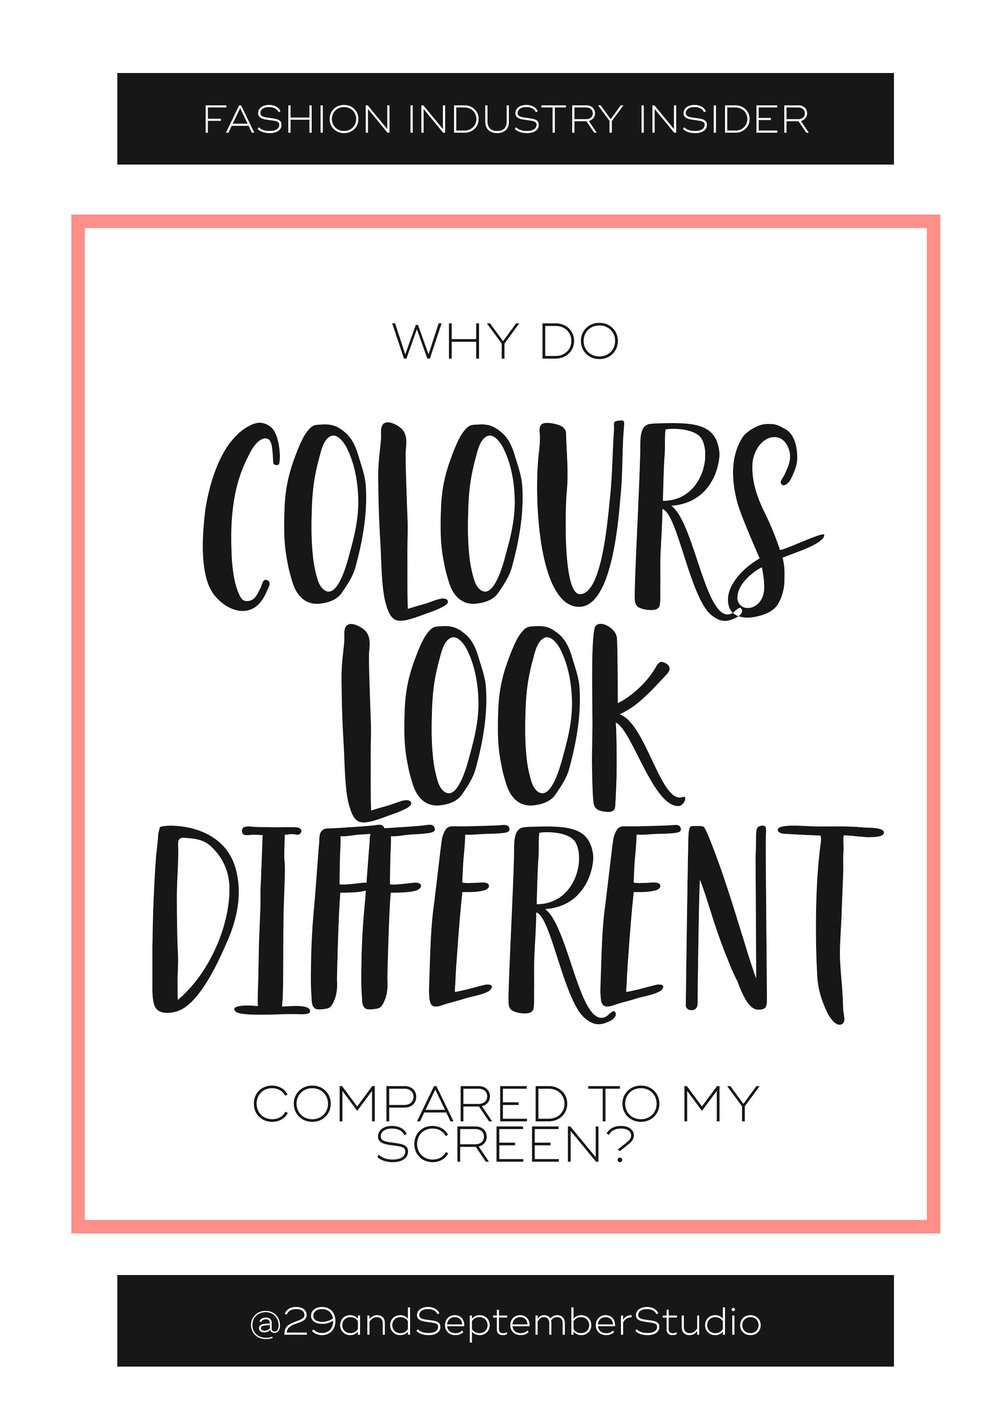 Why do colours look different on my fashion fabric or print, compared to what I saw on my screen?